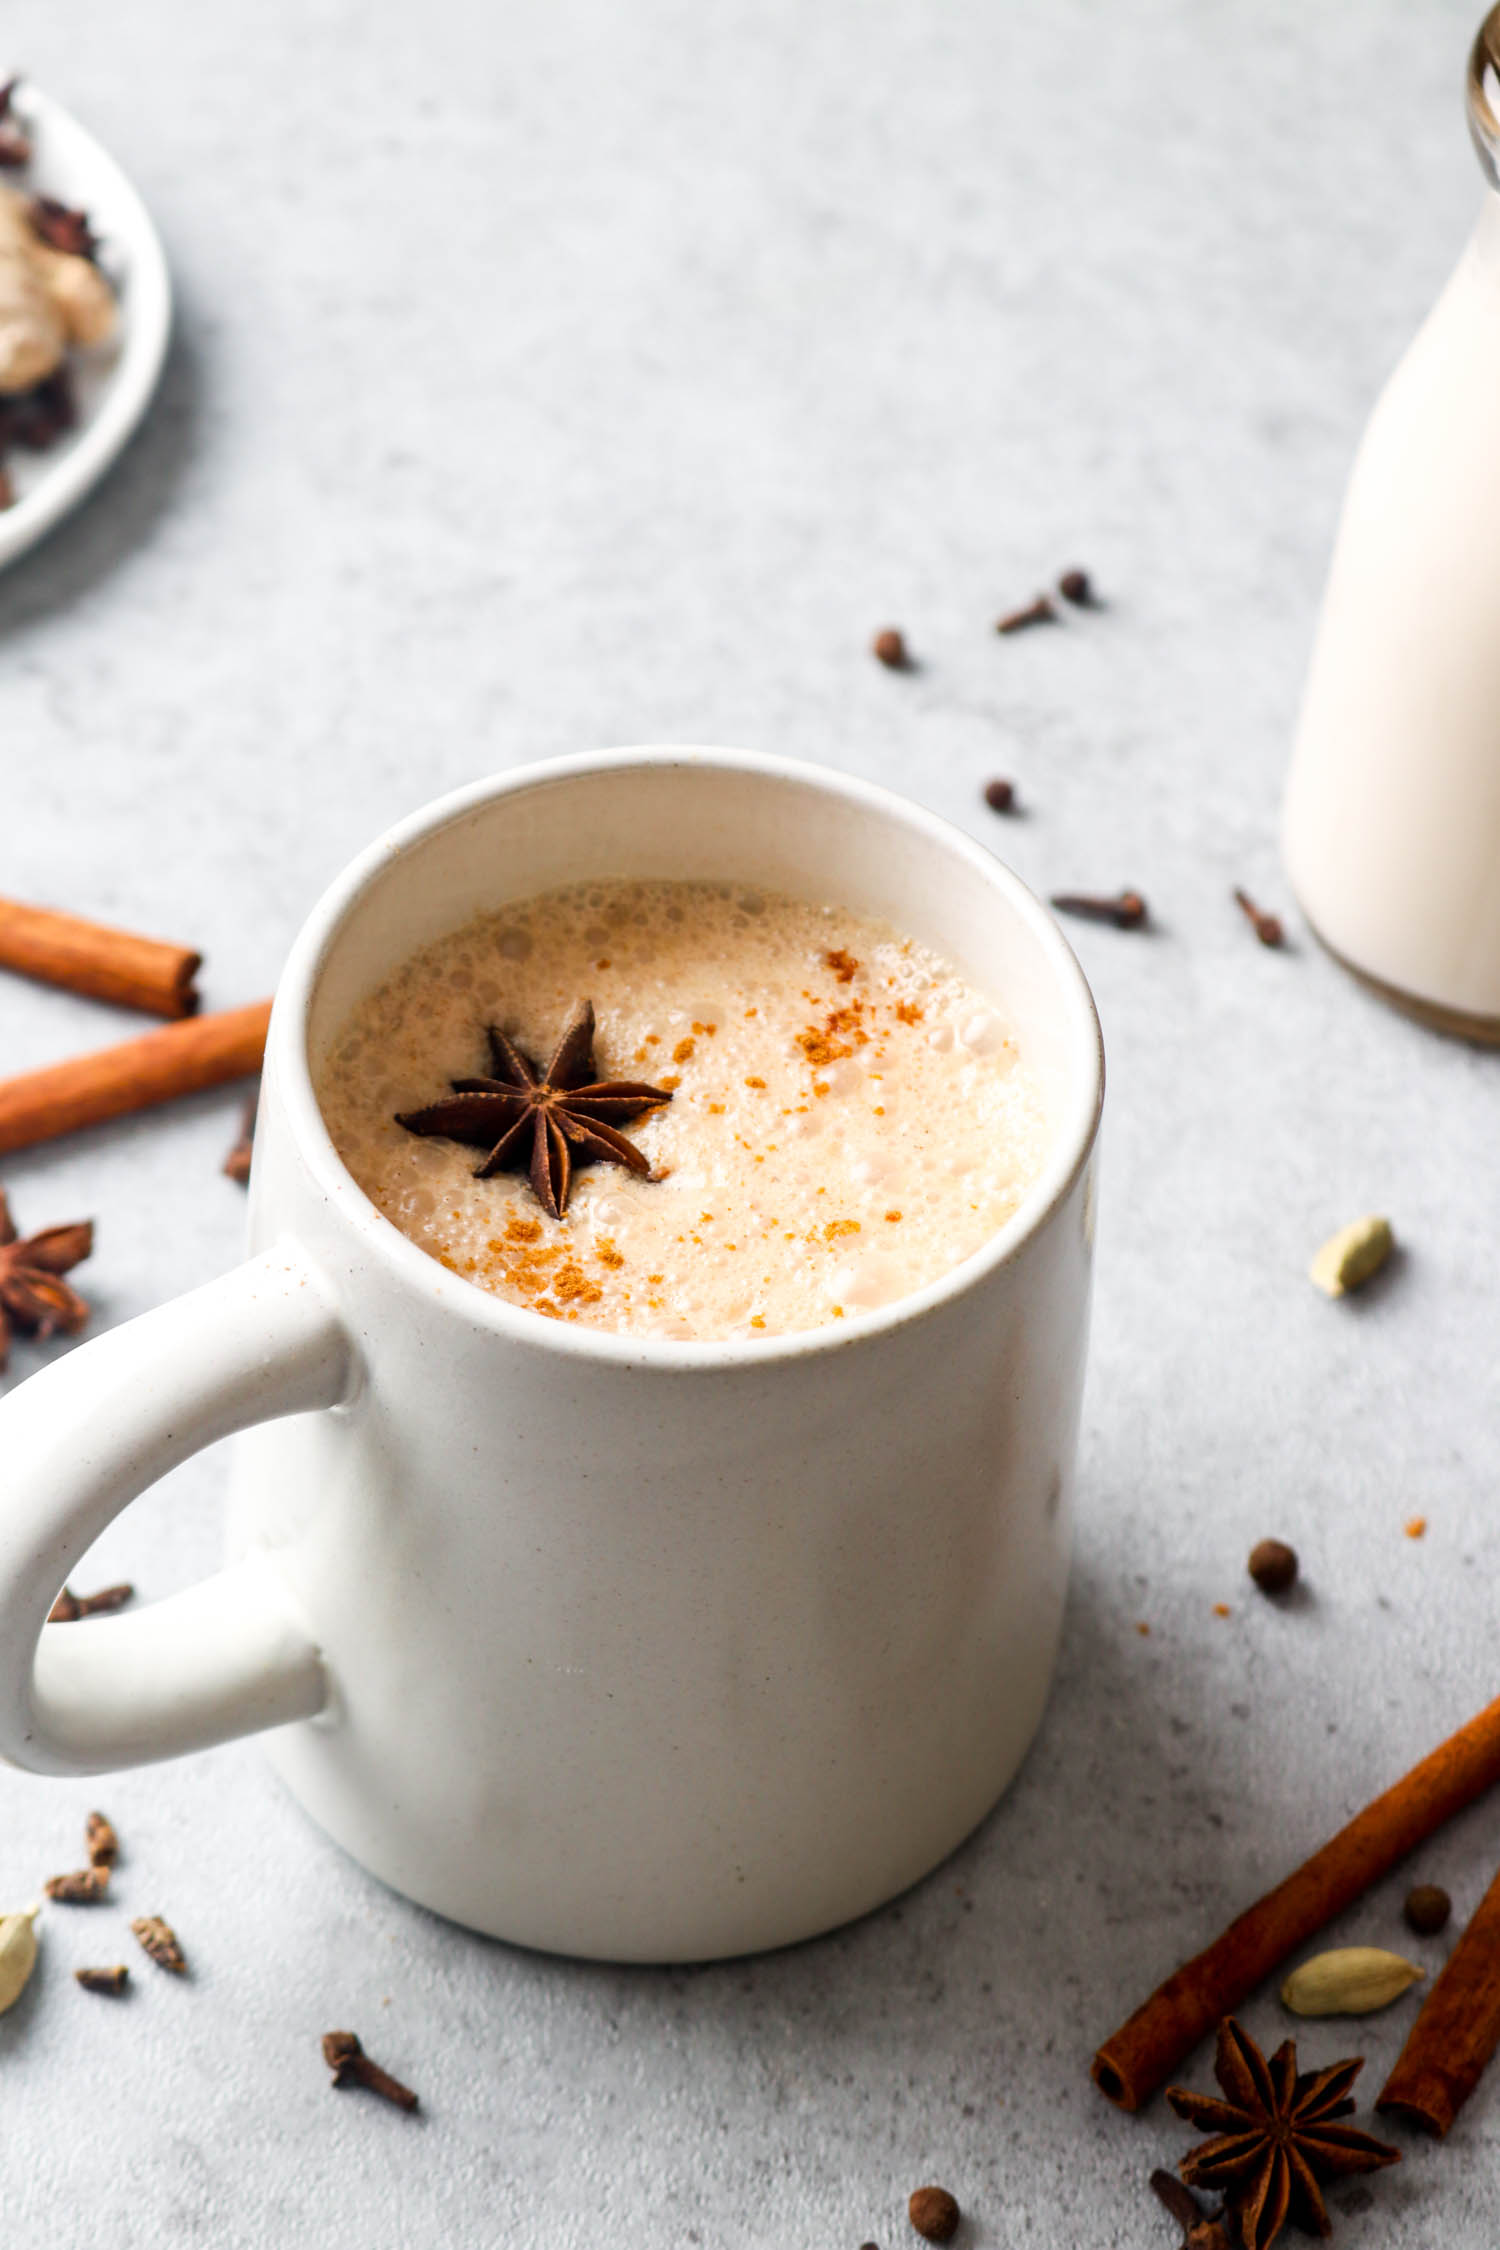 A chill chai latte surrounded by cinnamon sticks, cloves, cardamom, star anise, and coconut milk.